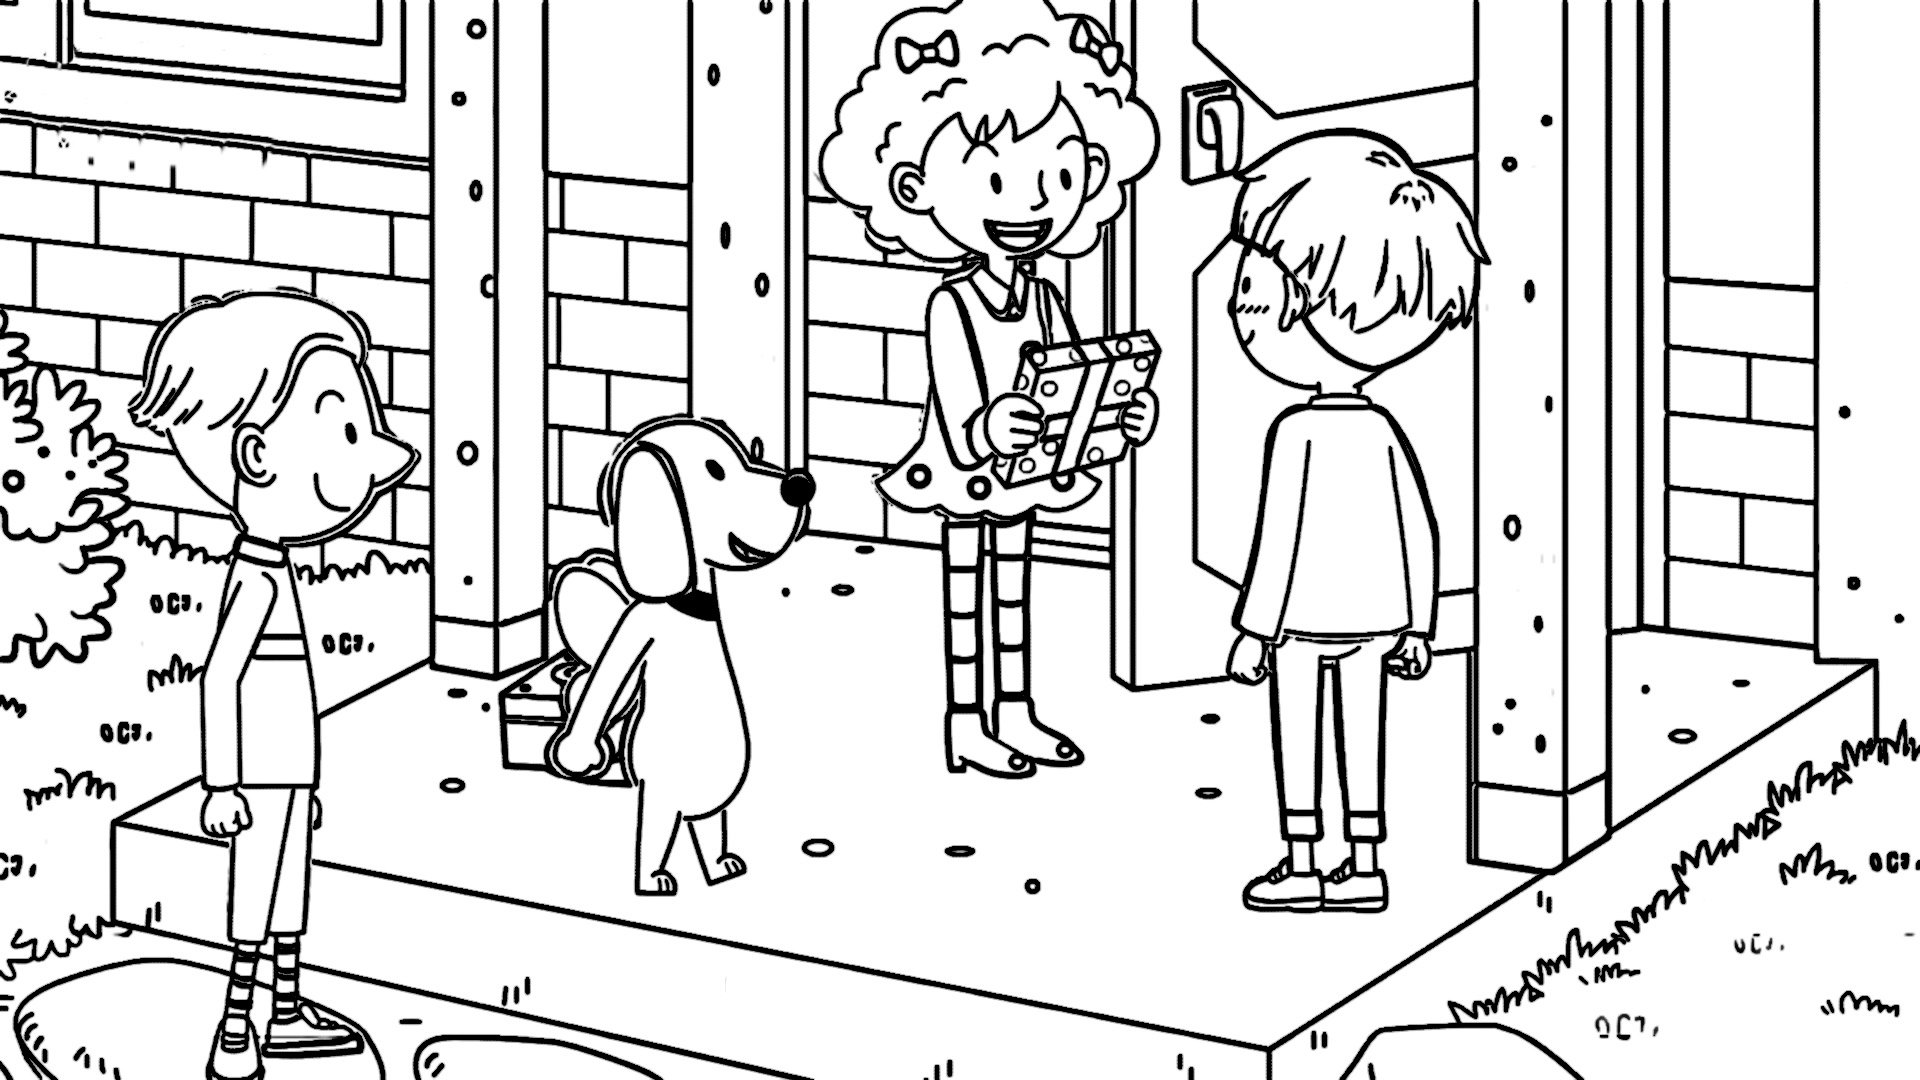 Speaking Cartoon Kids Coloring Page 08